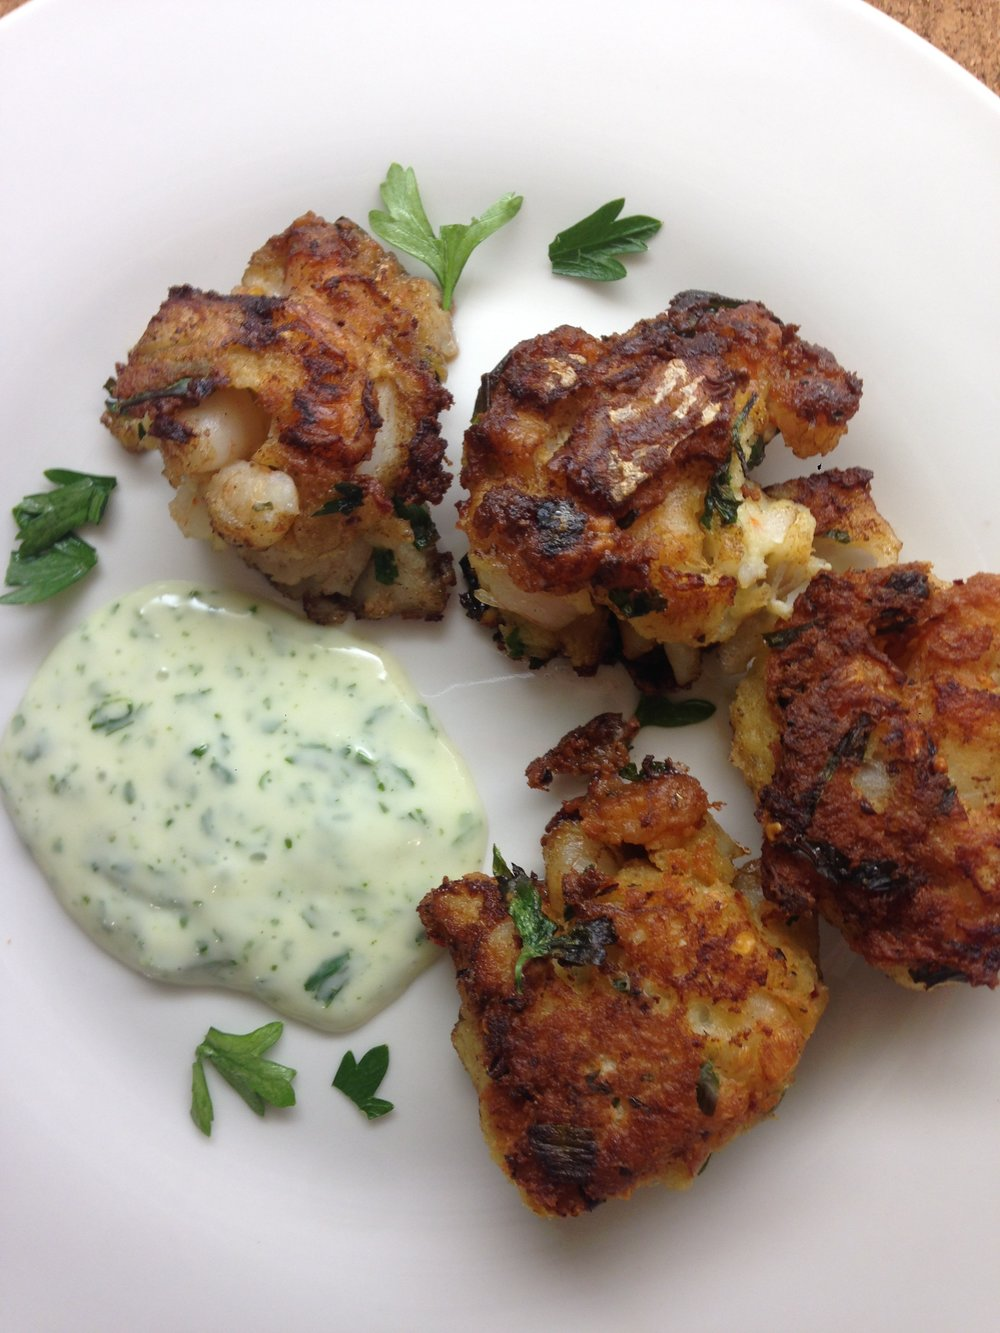 Andrea Fenise Memphis Fashion Blogger shares shrimp and cod cakes recipe